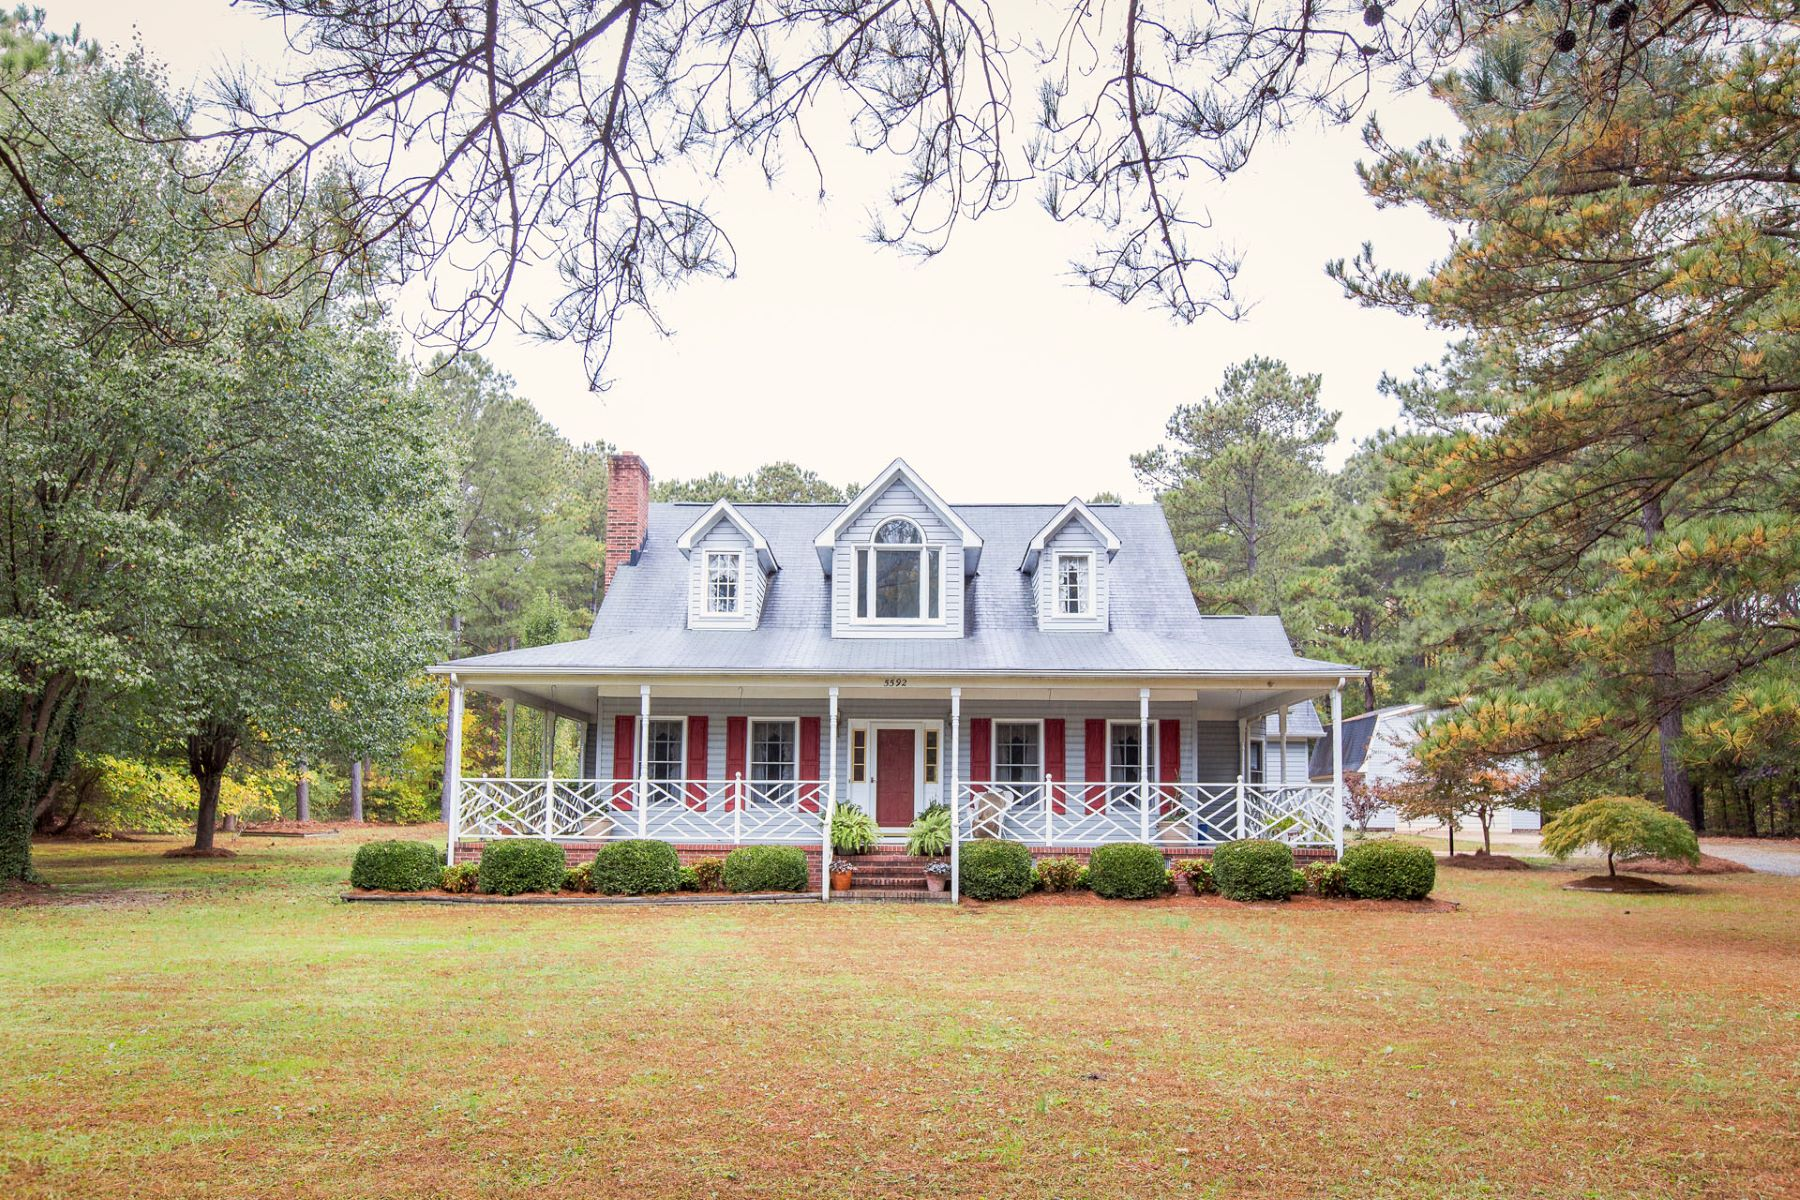 Single Family Home for Sale at Millwood 5592 Millwood Dr. Gloucester, Virginia, 23061 United States